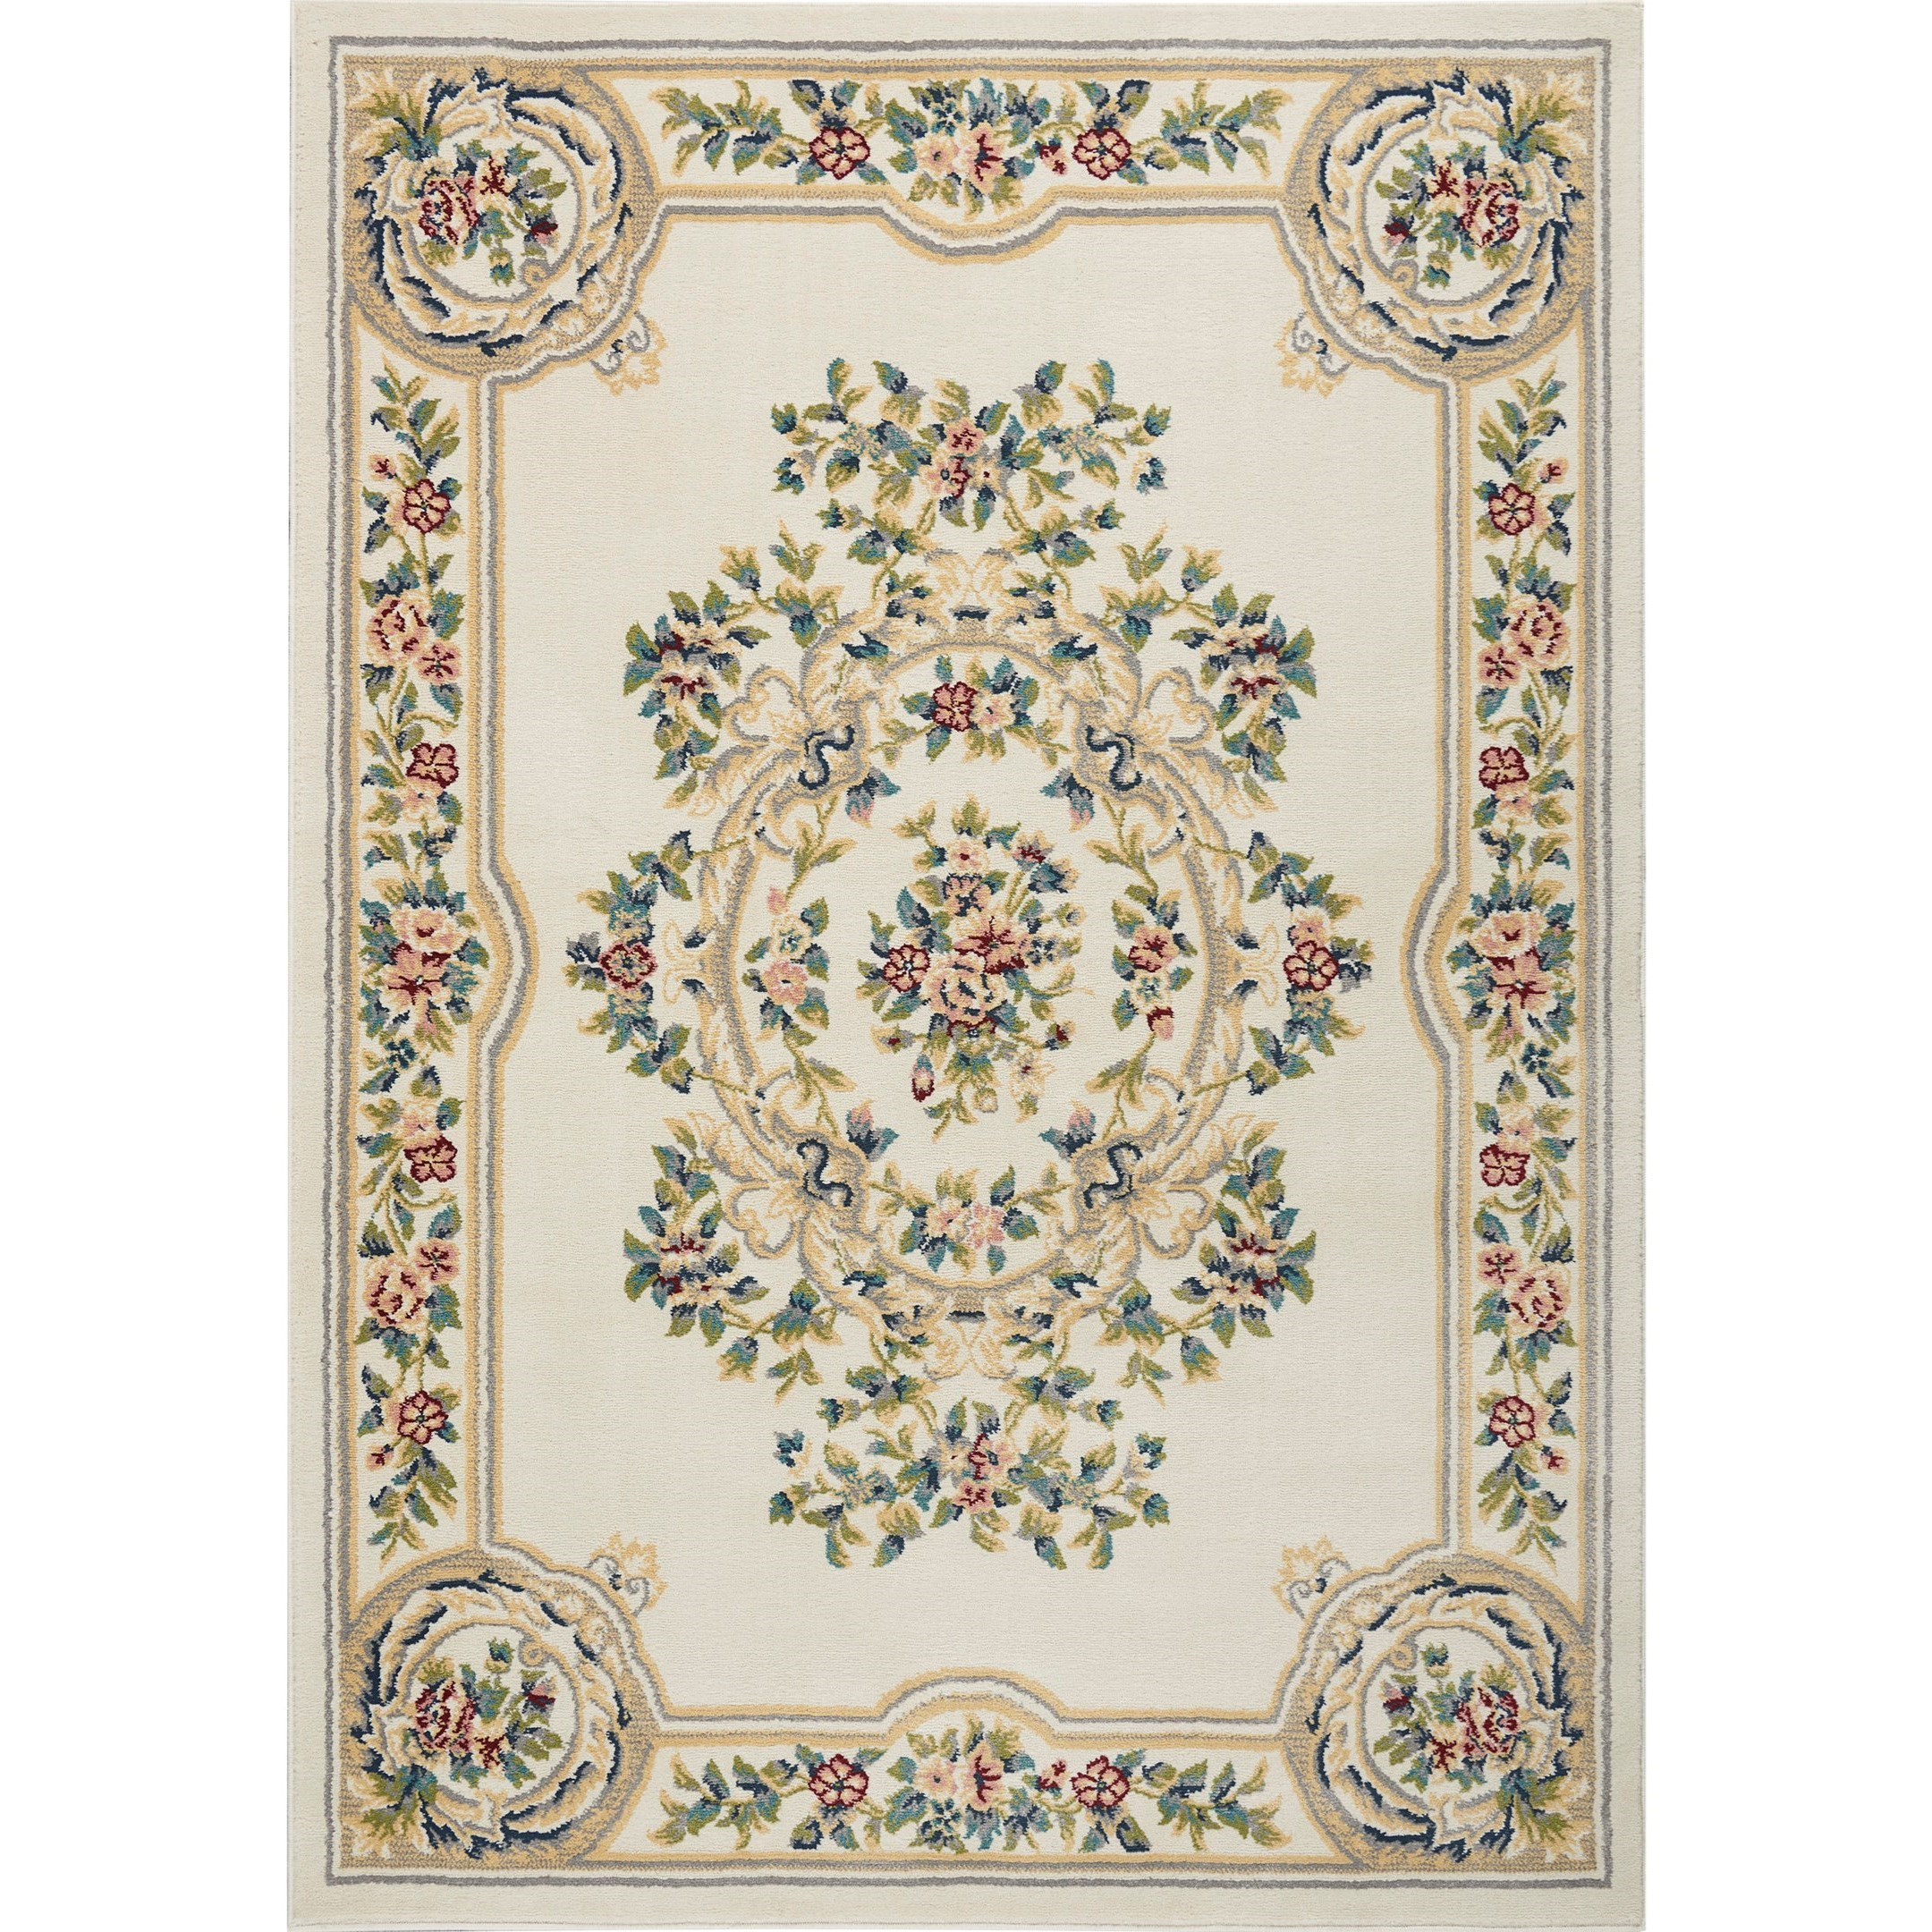 Aubusson 2020 9' x 12' Rug by Nourison at Home Collections Furniture